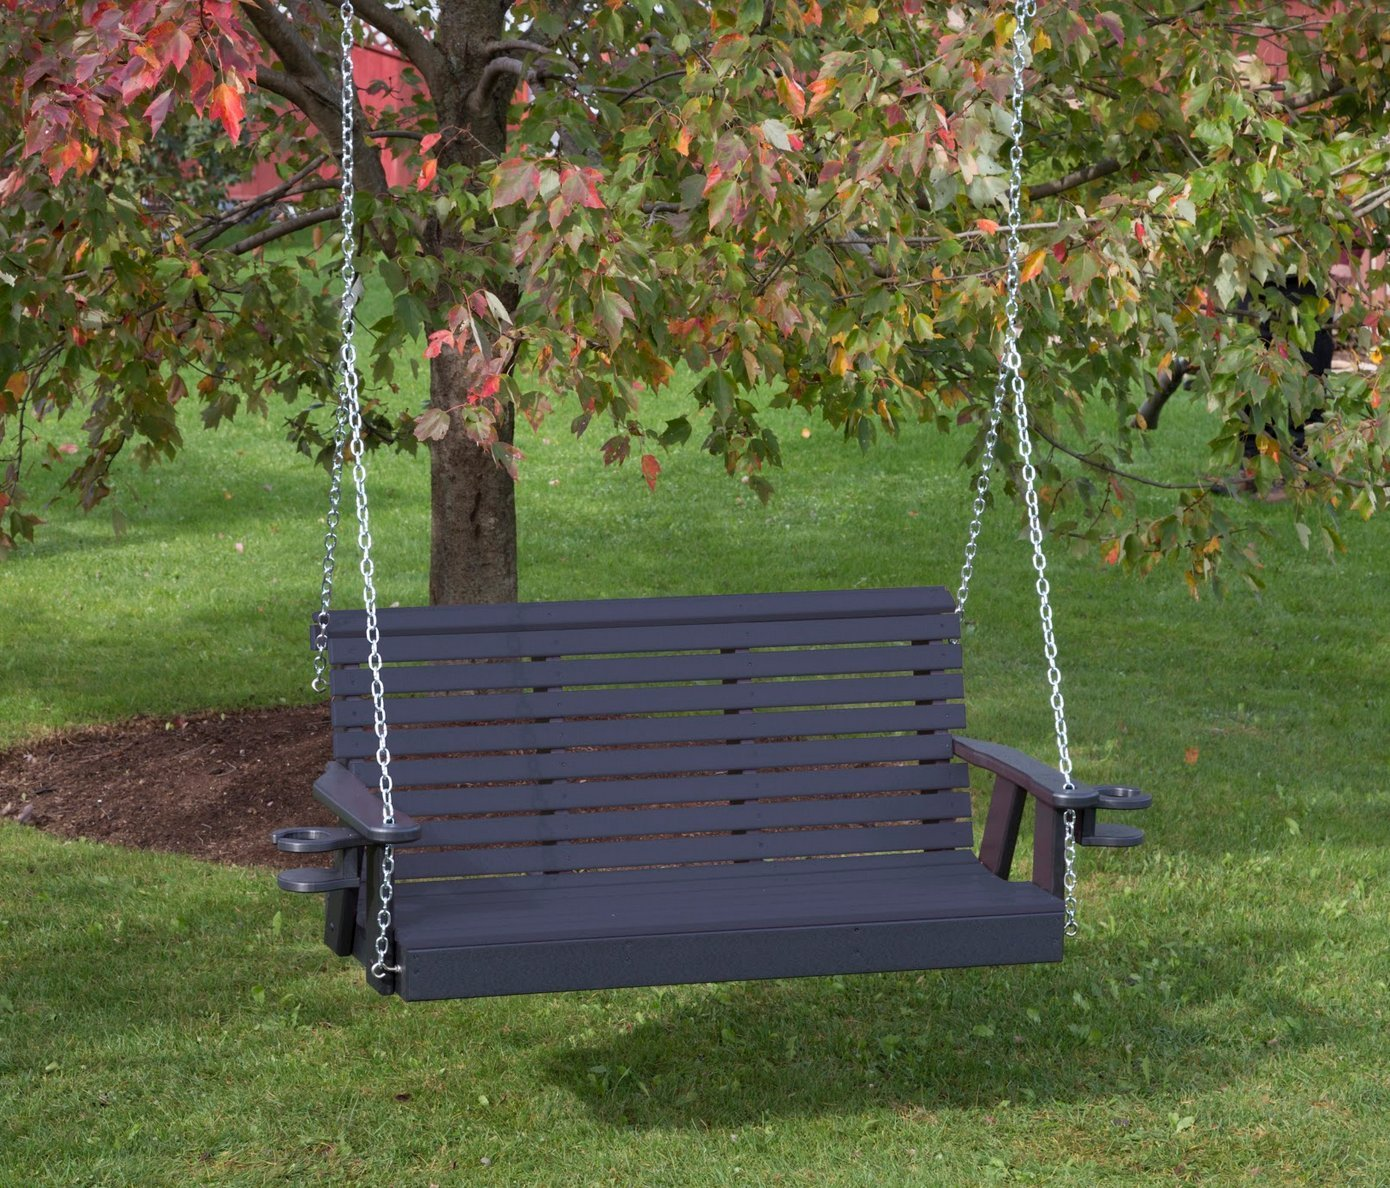 5FT-BLACK-POLY LUMBER ROLL BACK Porch Swing with Cupholder arms Heavy Duty EVERLASTING PolyTuf HDPE - MADE IN USA - AMISH CRAFTED